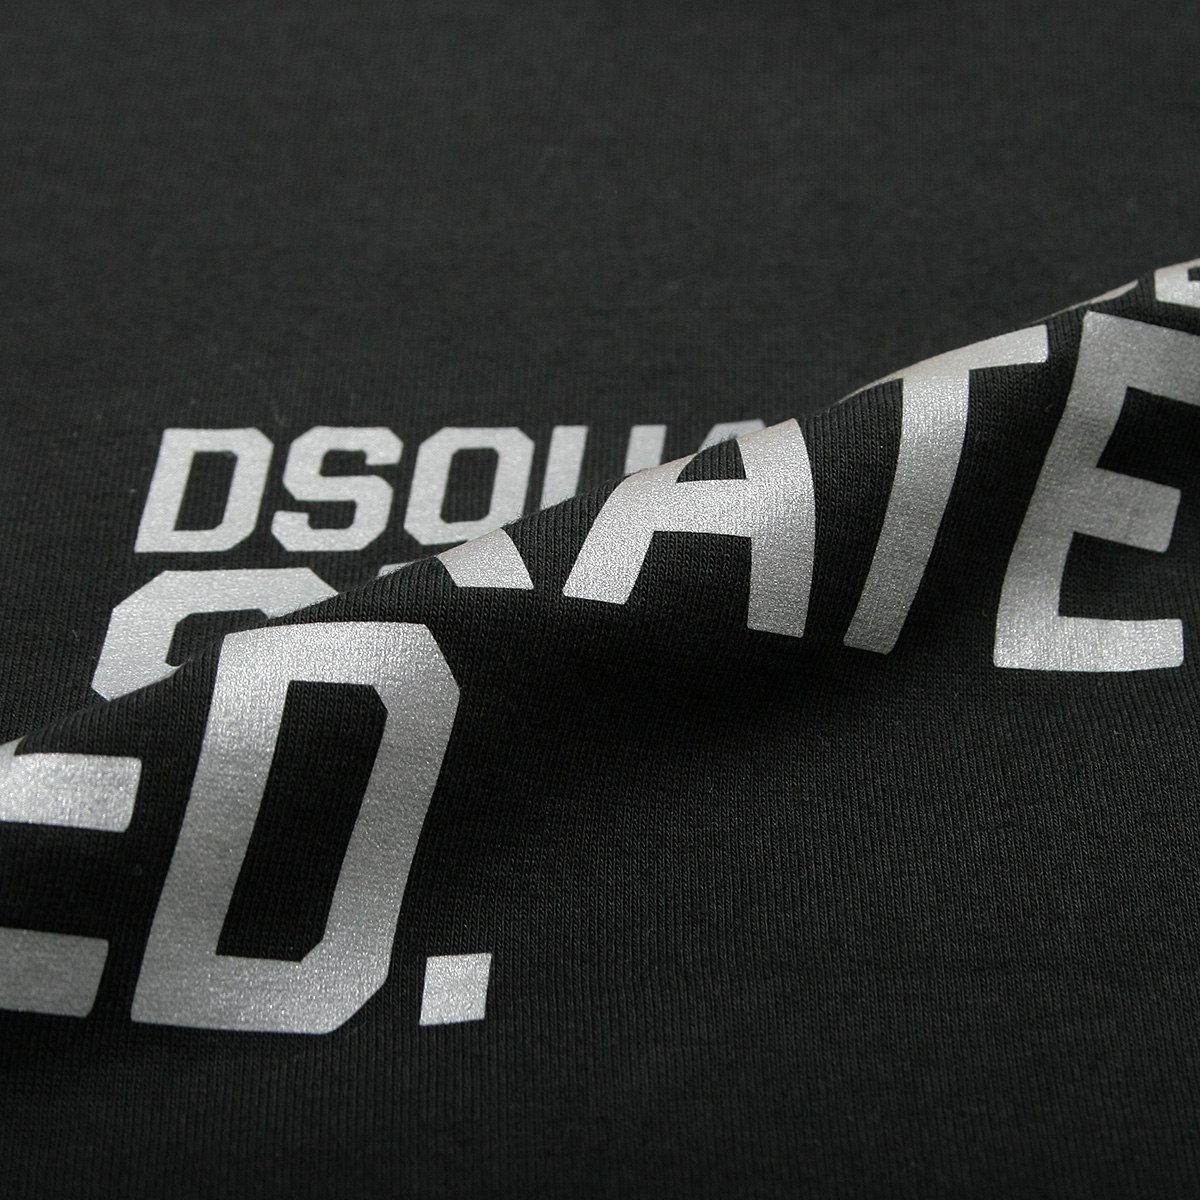 DSQUARED2 (ディースクエアード) 綿100% ロゴプリント クルーネック 長袖 Tシャツ 【D2GD0094S22427】